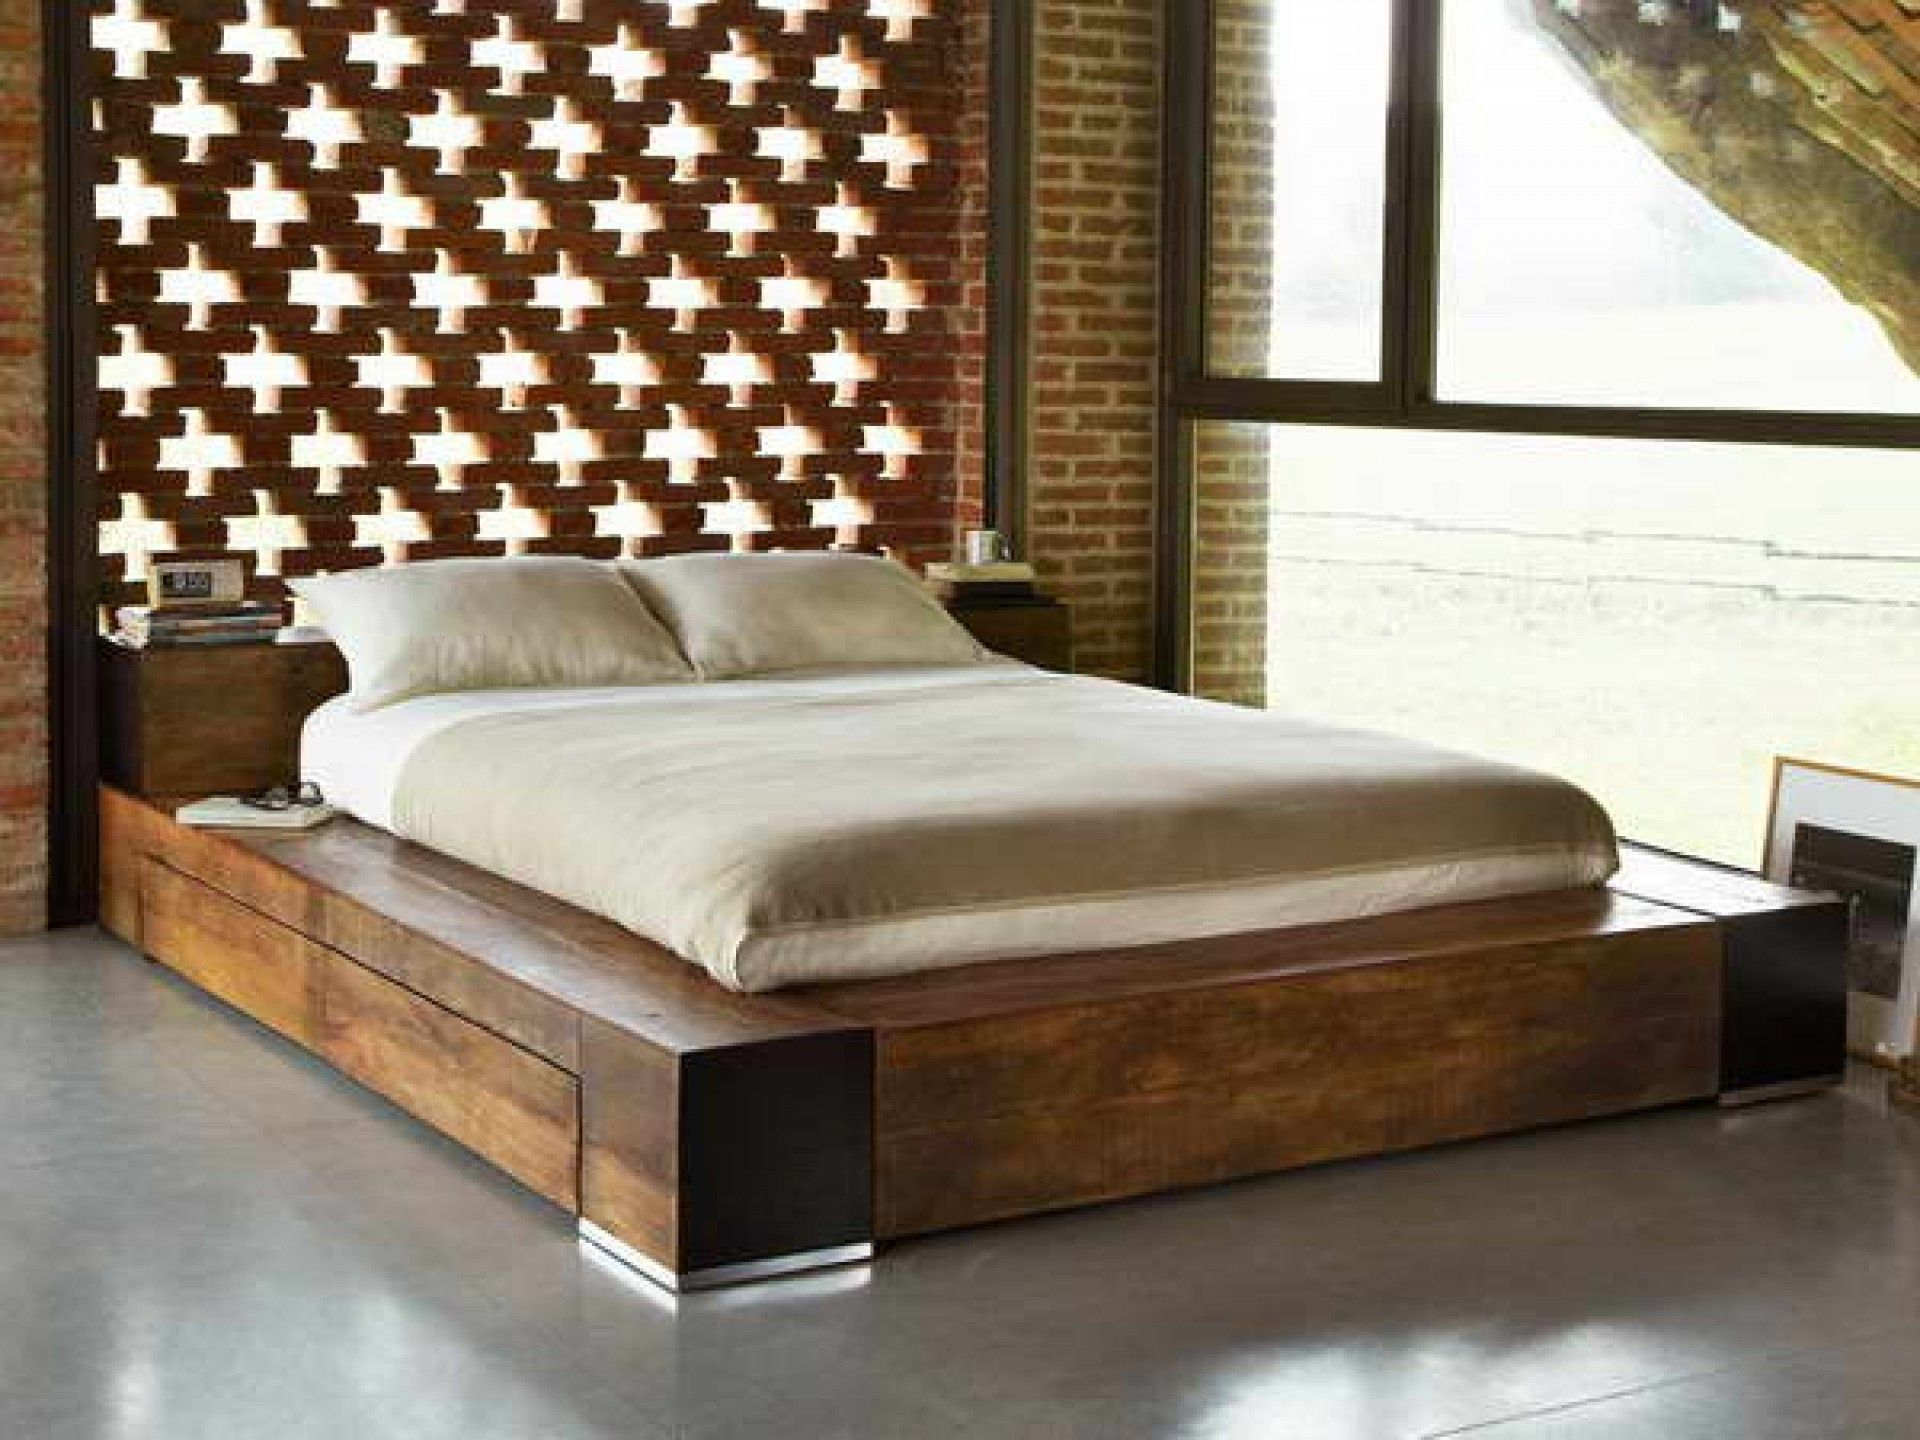 Brown Lacquer Teak Wood Bed Frame Having Double Storage Drawer Underneath On Gray Ceramic Tiled Floor Ad Mit Bildern Holzbetten Selbstgemachte Bettrahmen Schlafzimmer Diy